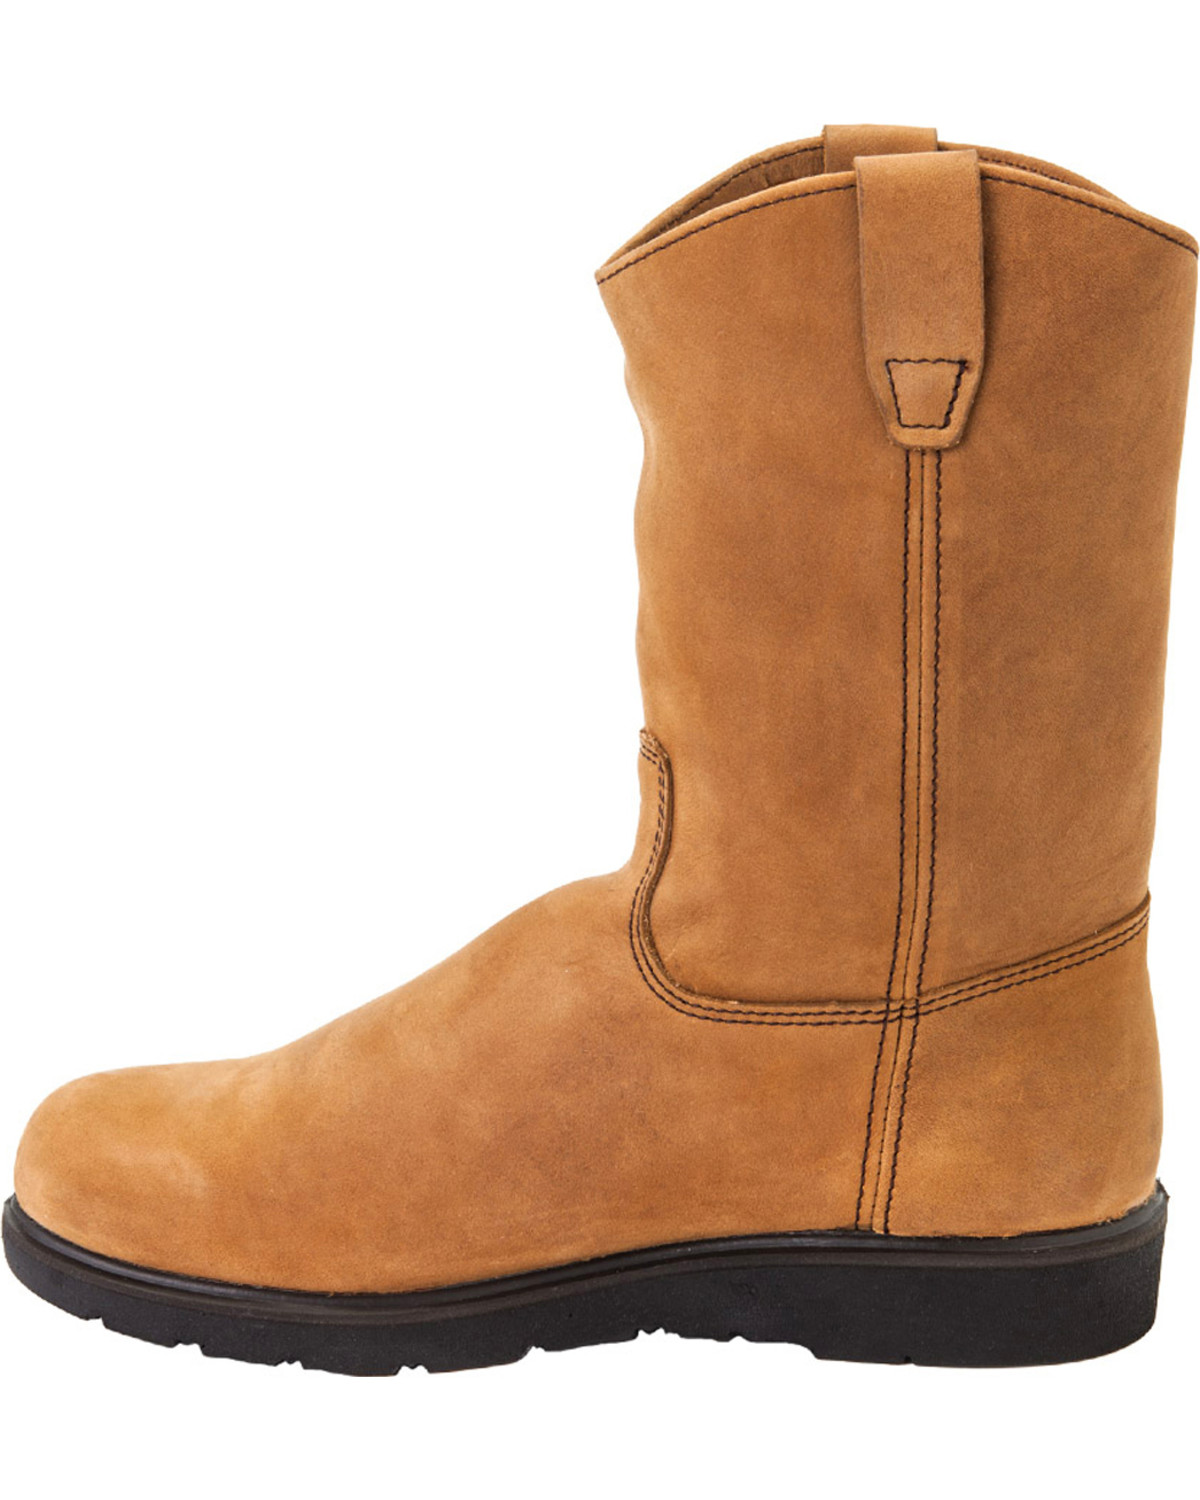 Georgia Men S Farm Amp Ranch Wellington Cc Work Boots Boot